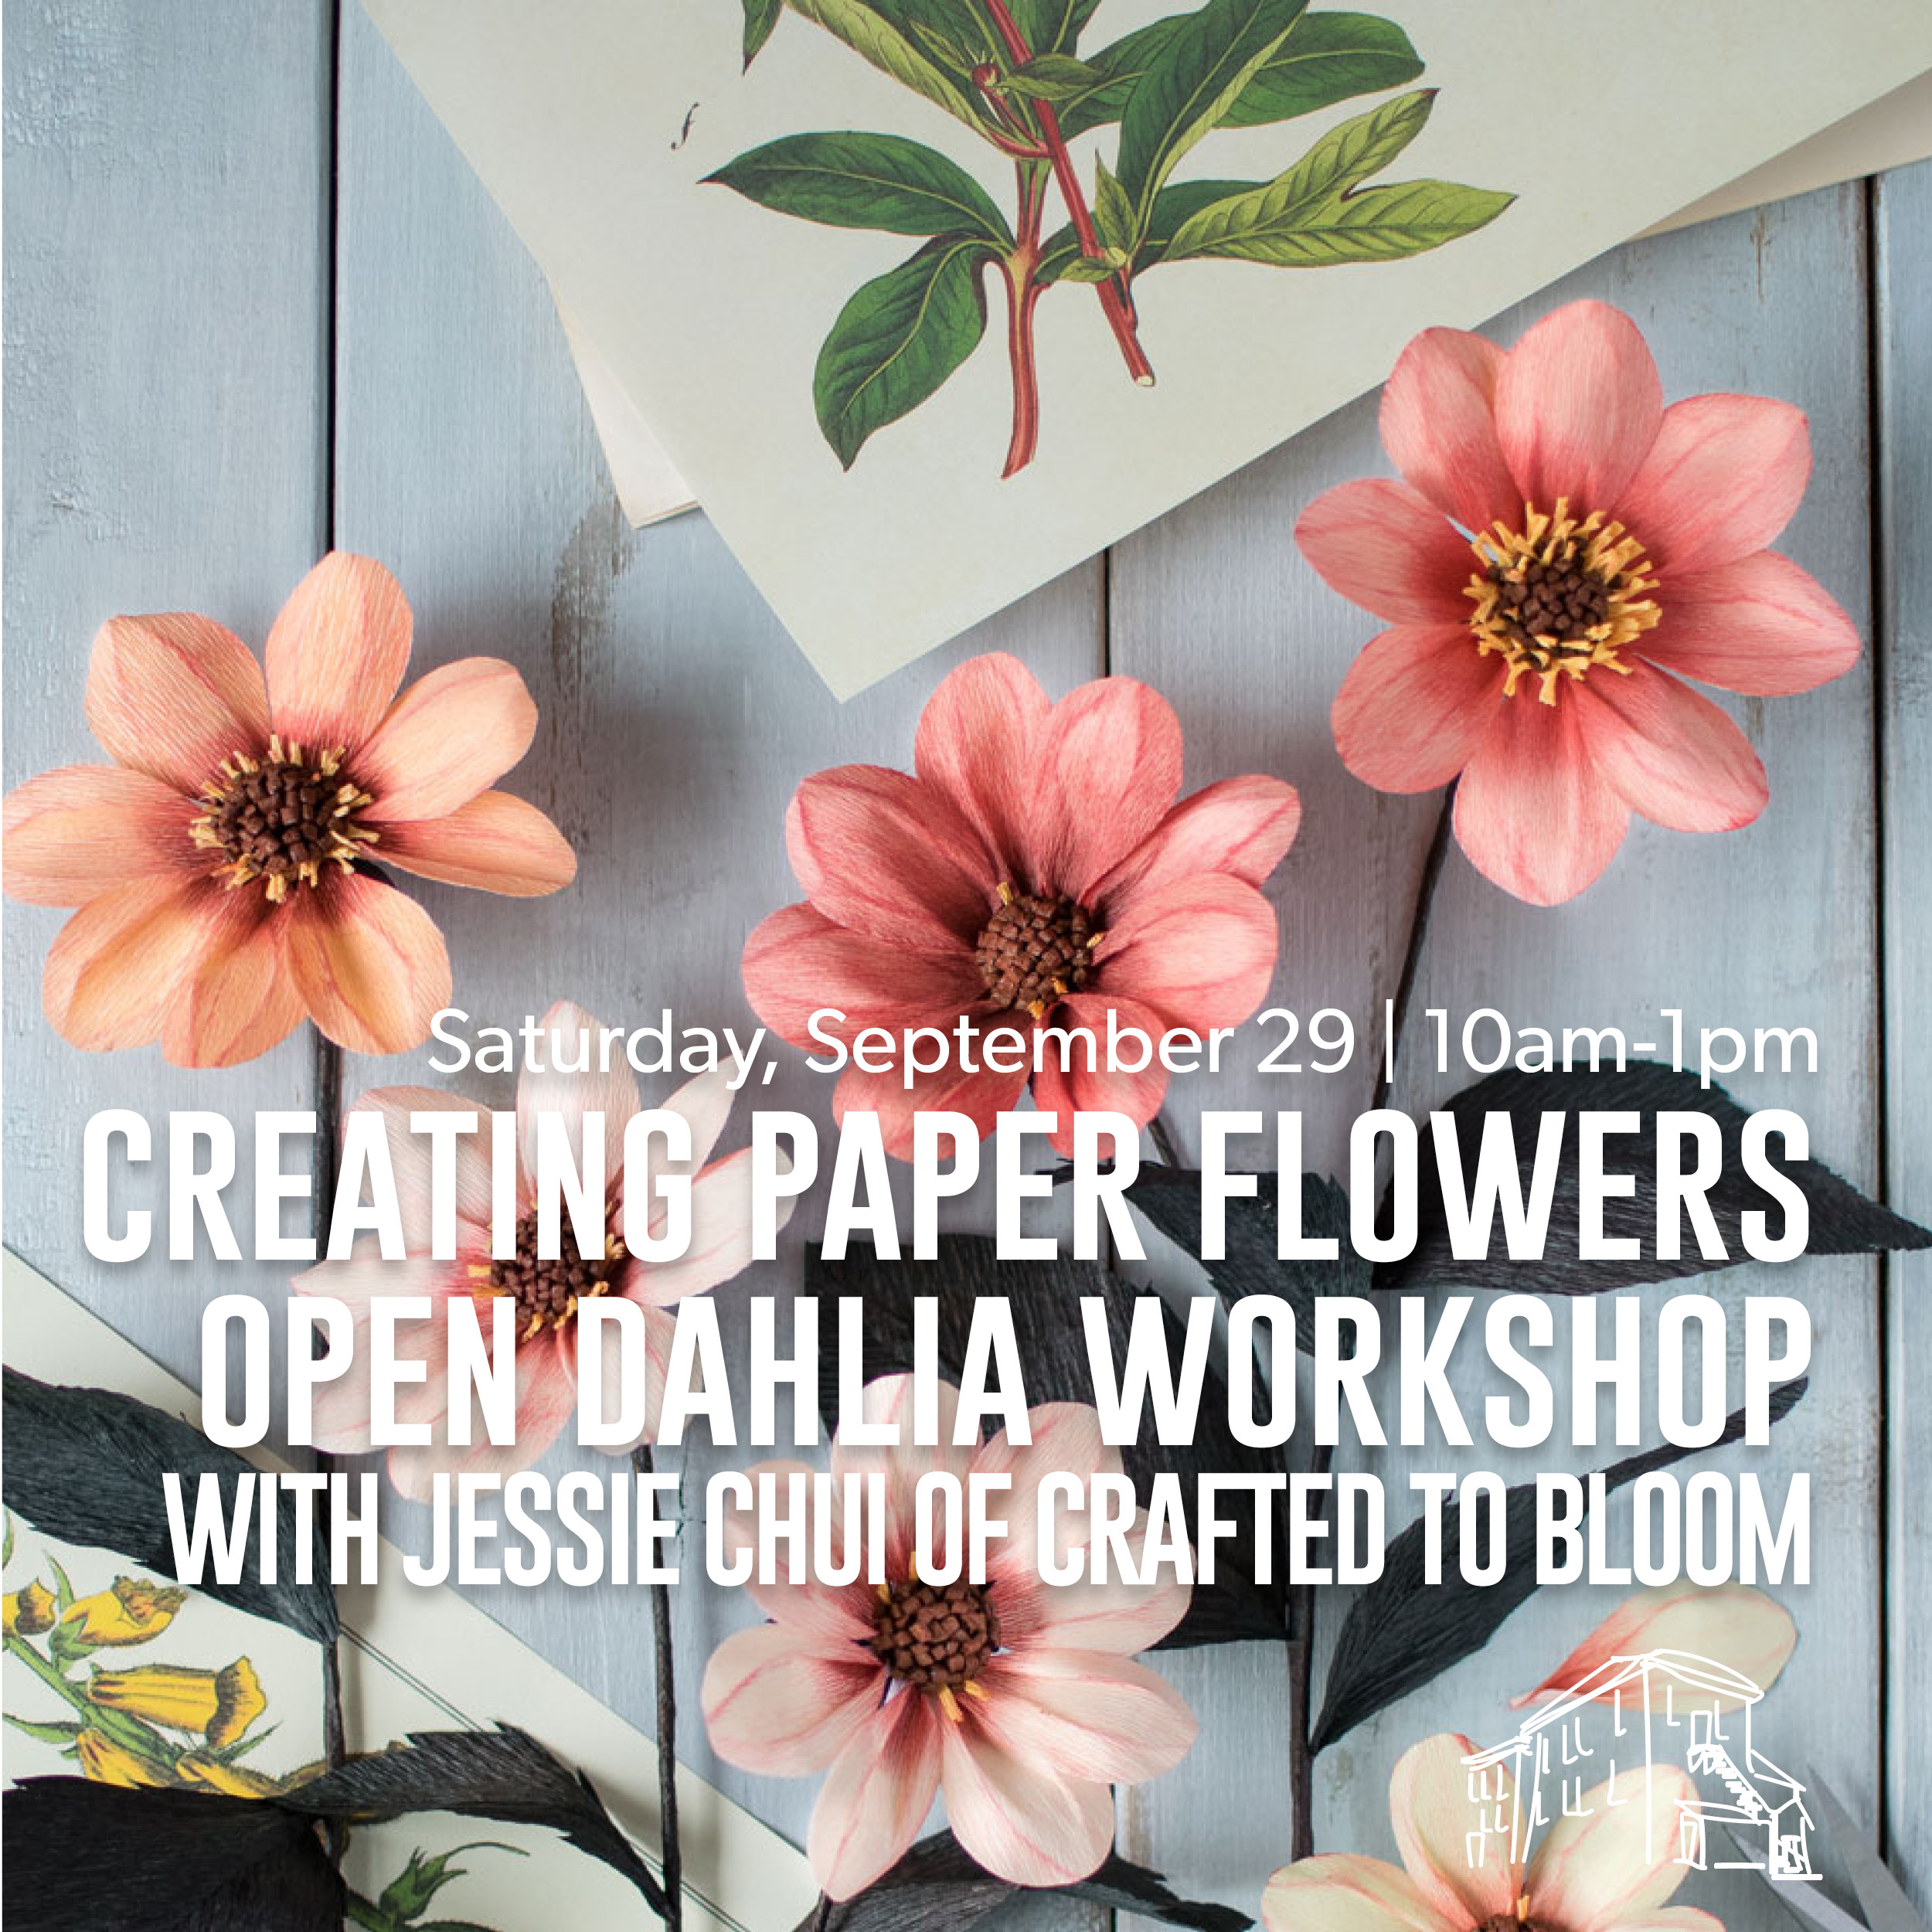 Creating paper flowers open dahlia workshop with jessie chui of creating paper flowers open dahlia workshop with jessie chui of crafted to bloomelora centre for the arts mightylinksfo